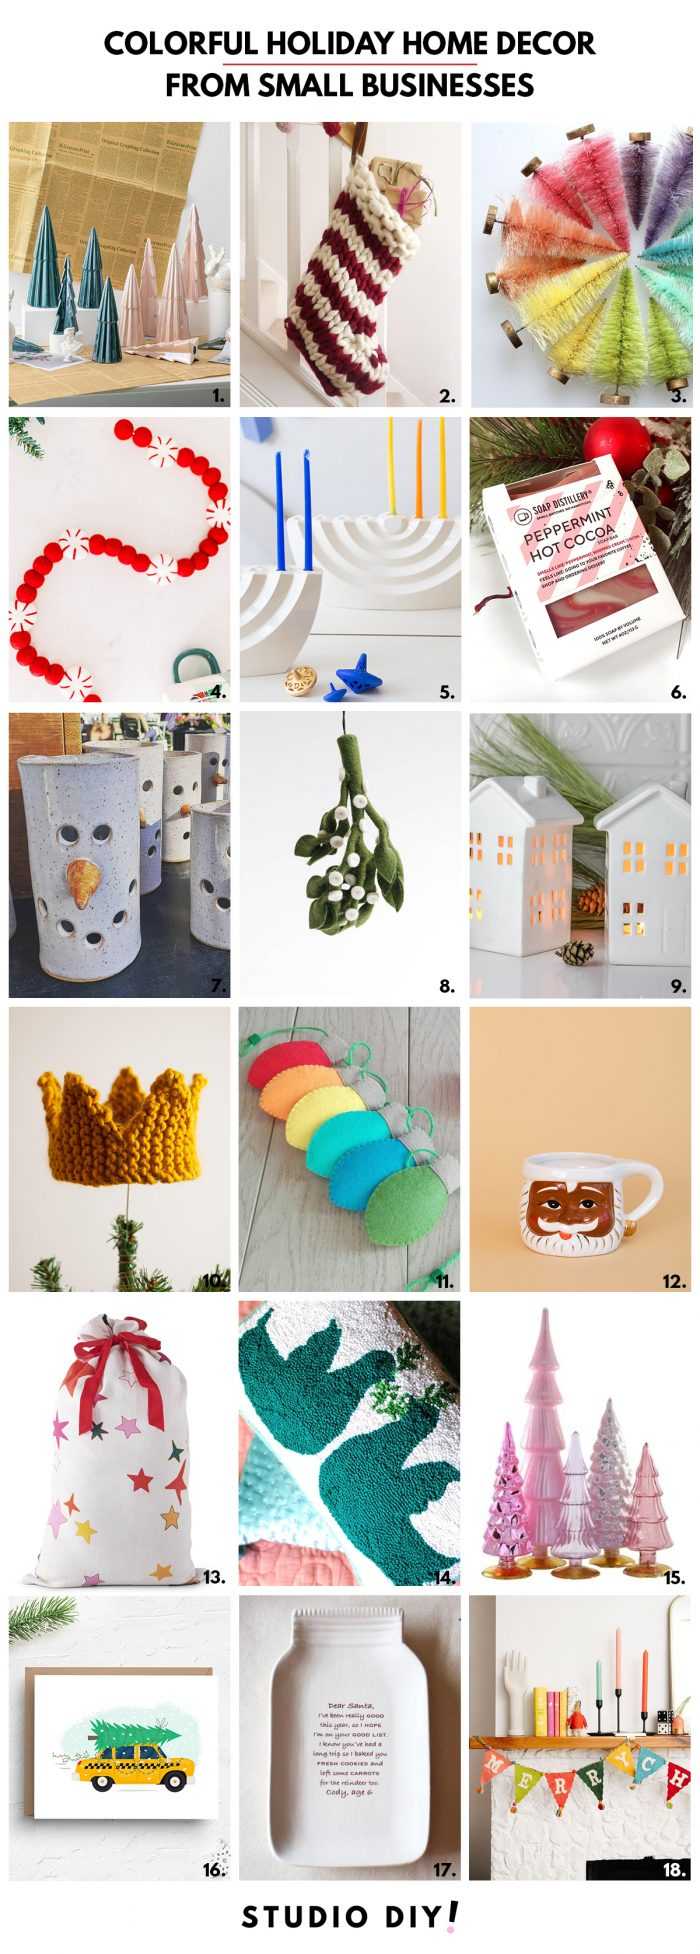 Colorful Holiday Home Decor Finds from Small Businesses